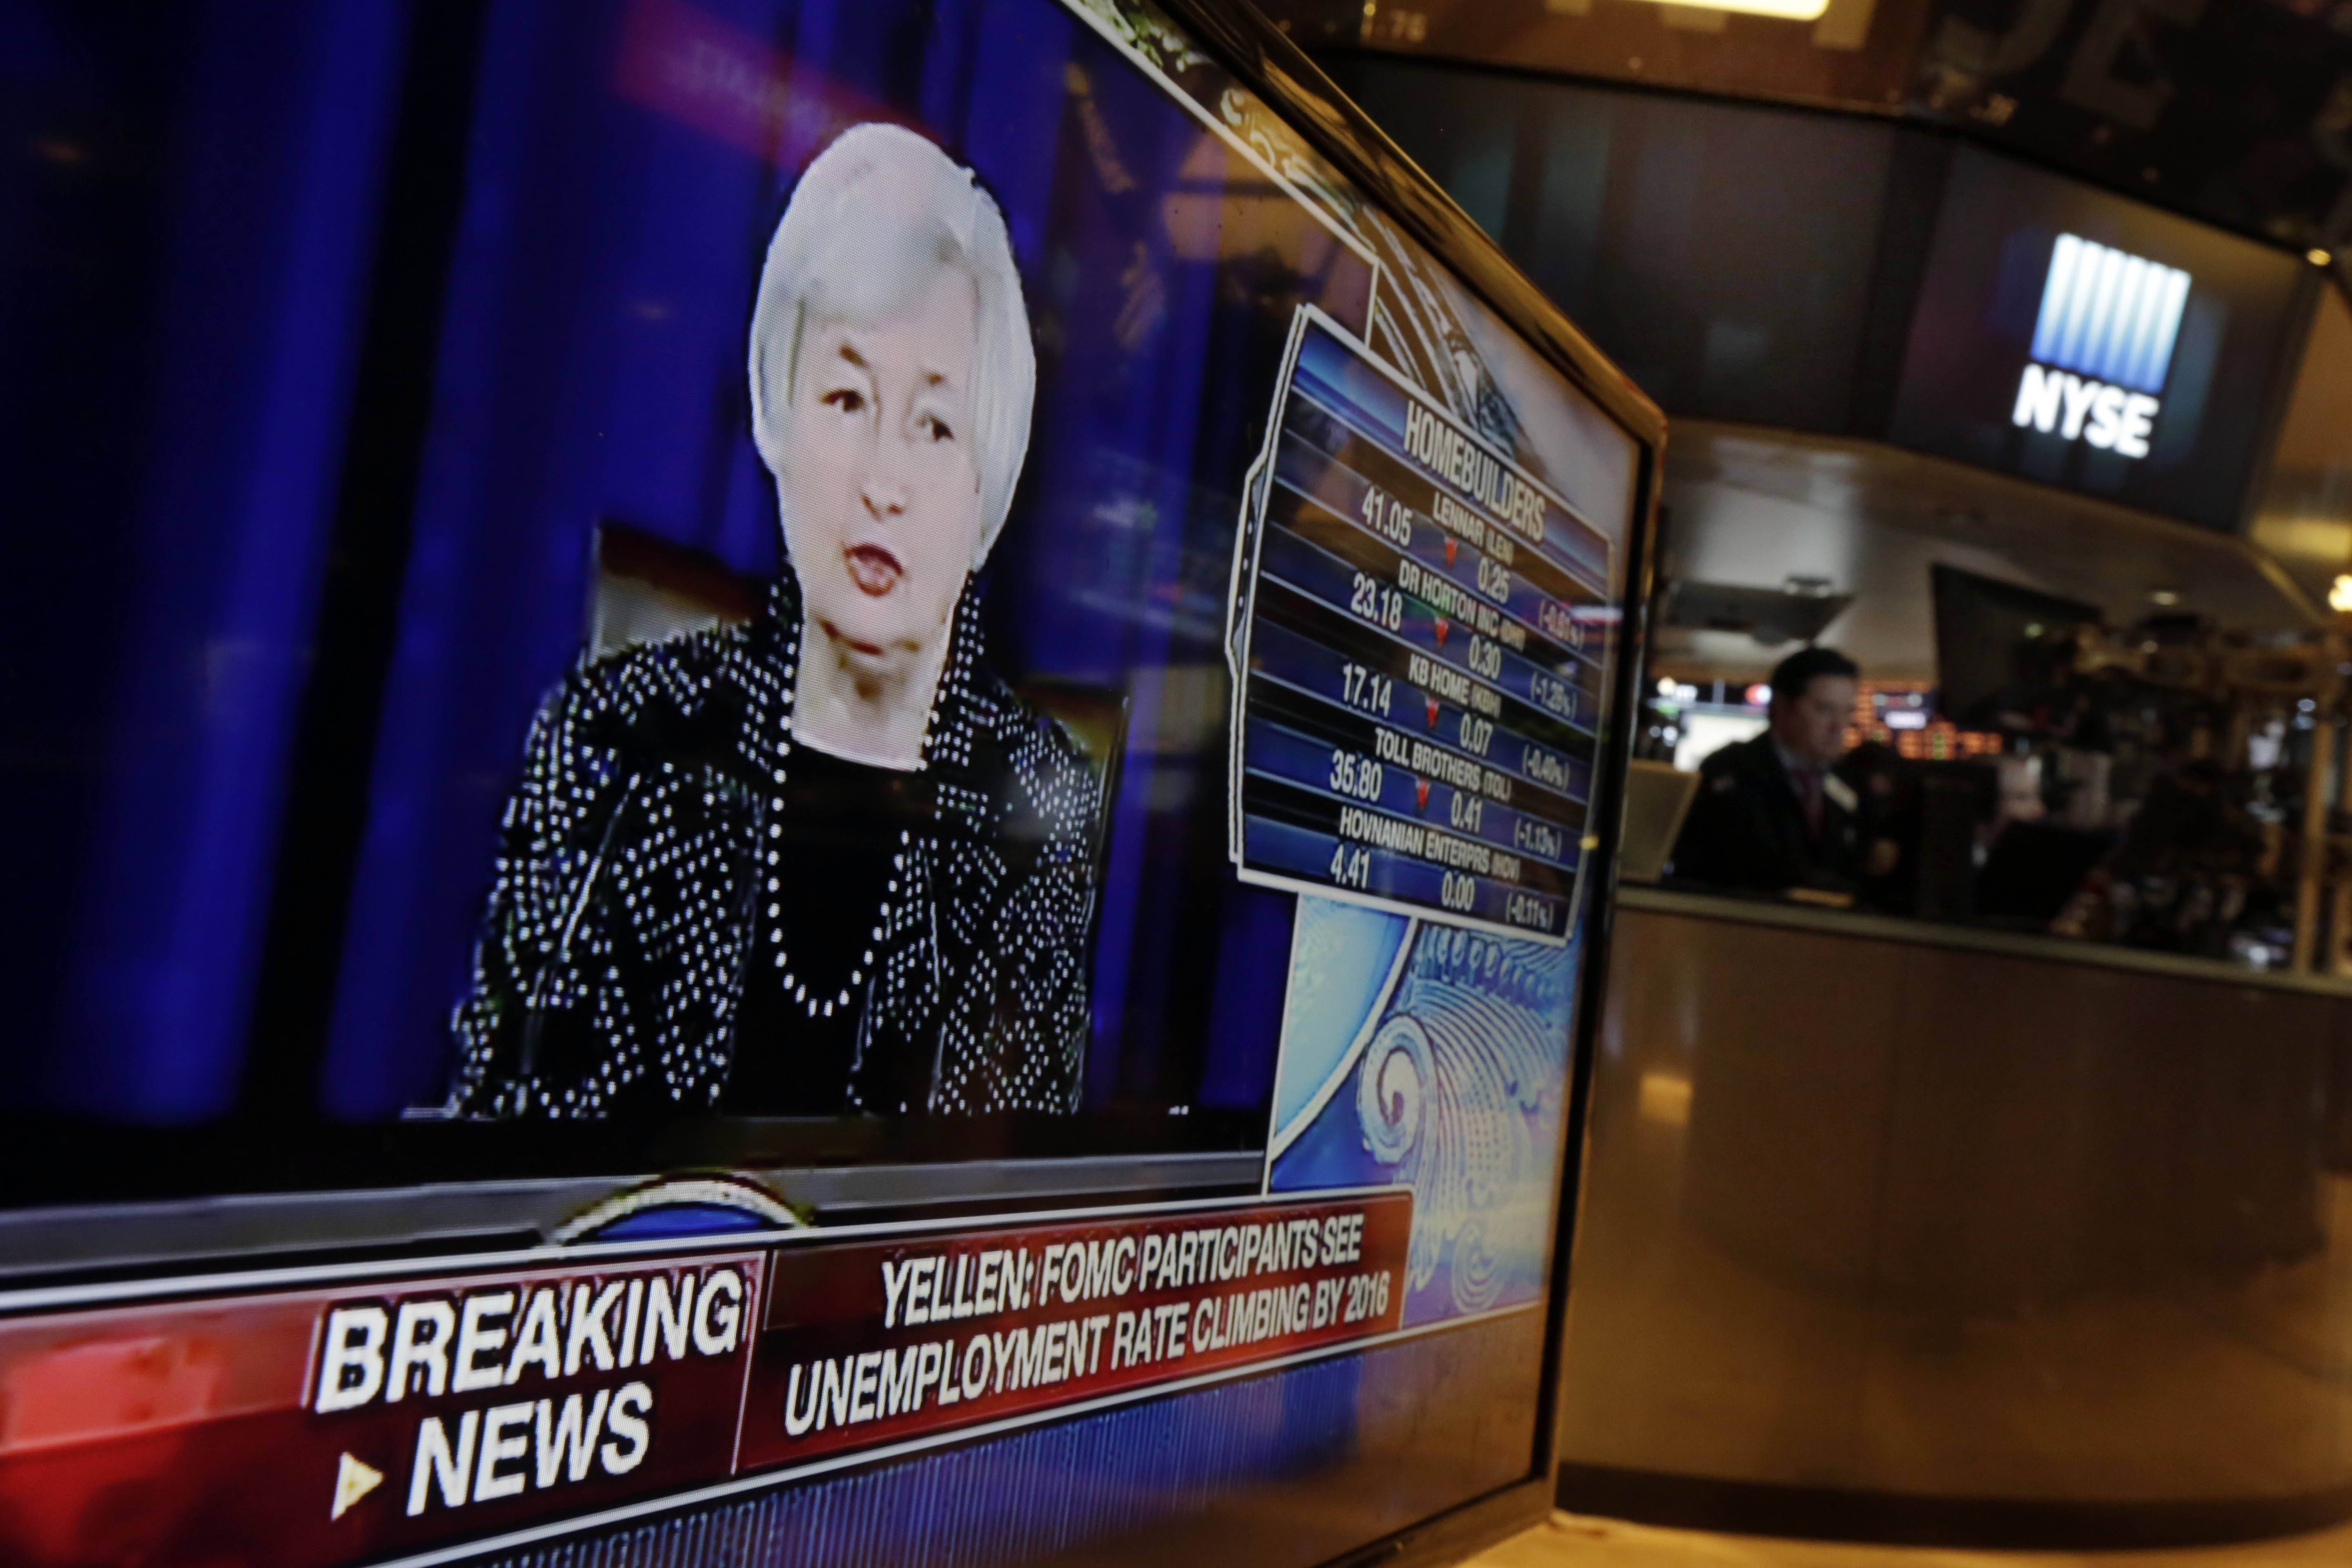 Federal Reserve Chair Janet Yellen's news conference Wednesday appears on a television monitor on the floor of the New York Stock Exchange.